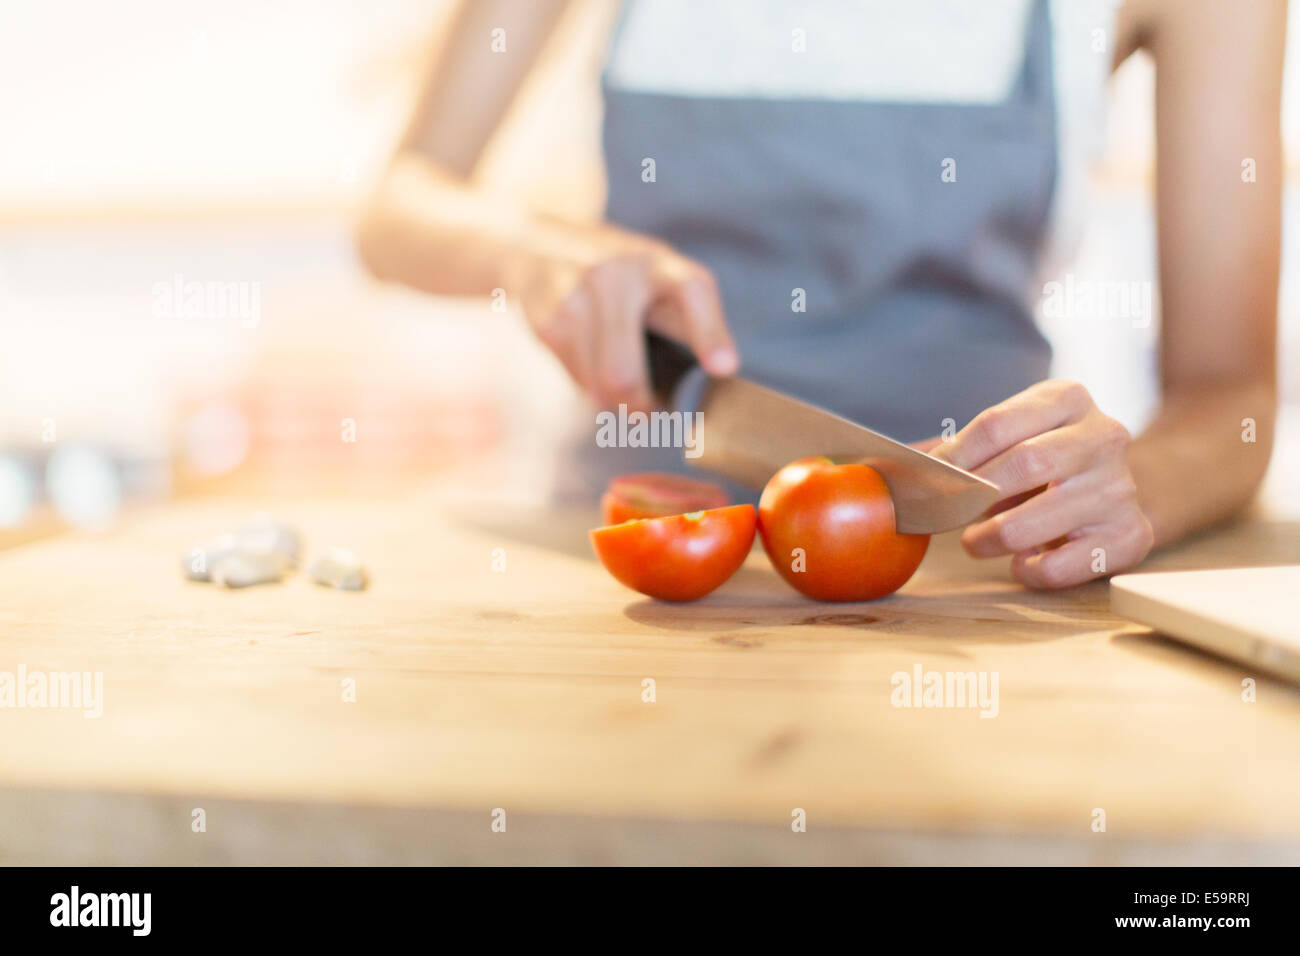 Chopping Stockfotos & Chopping Bilder - Alamy